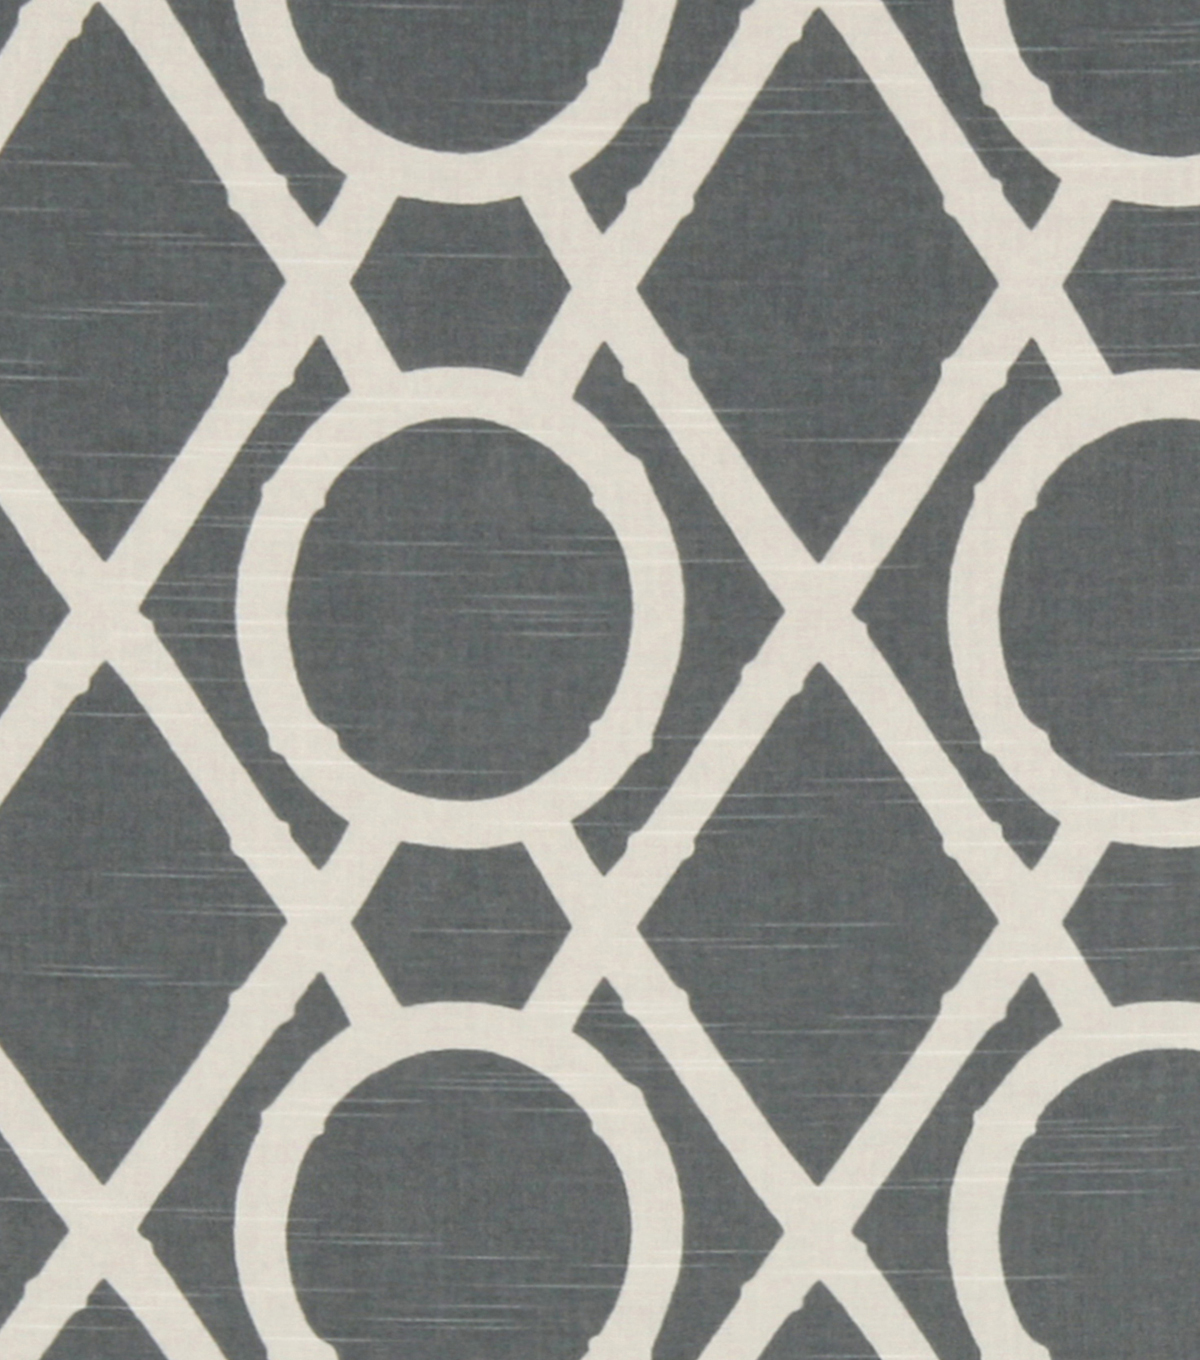 Home Decor 8\u0022x8\u0022 Fabric Swatch-Robert Allen Lattice Bamboo Greystone